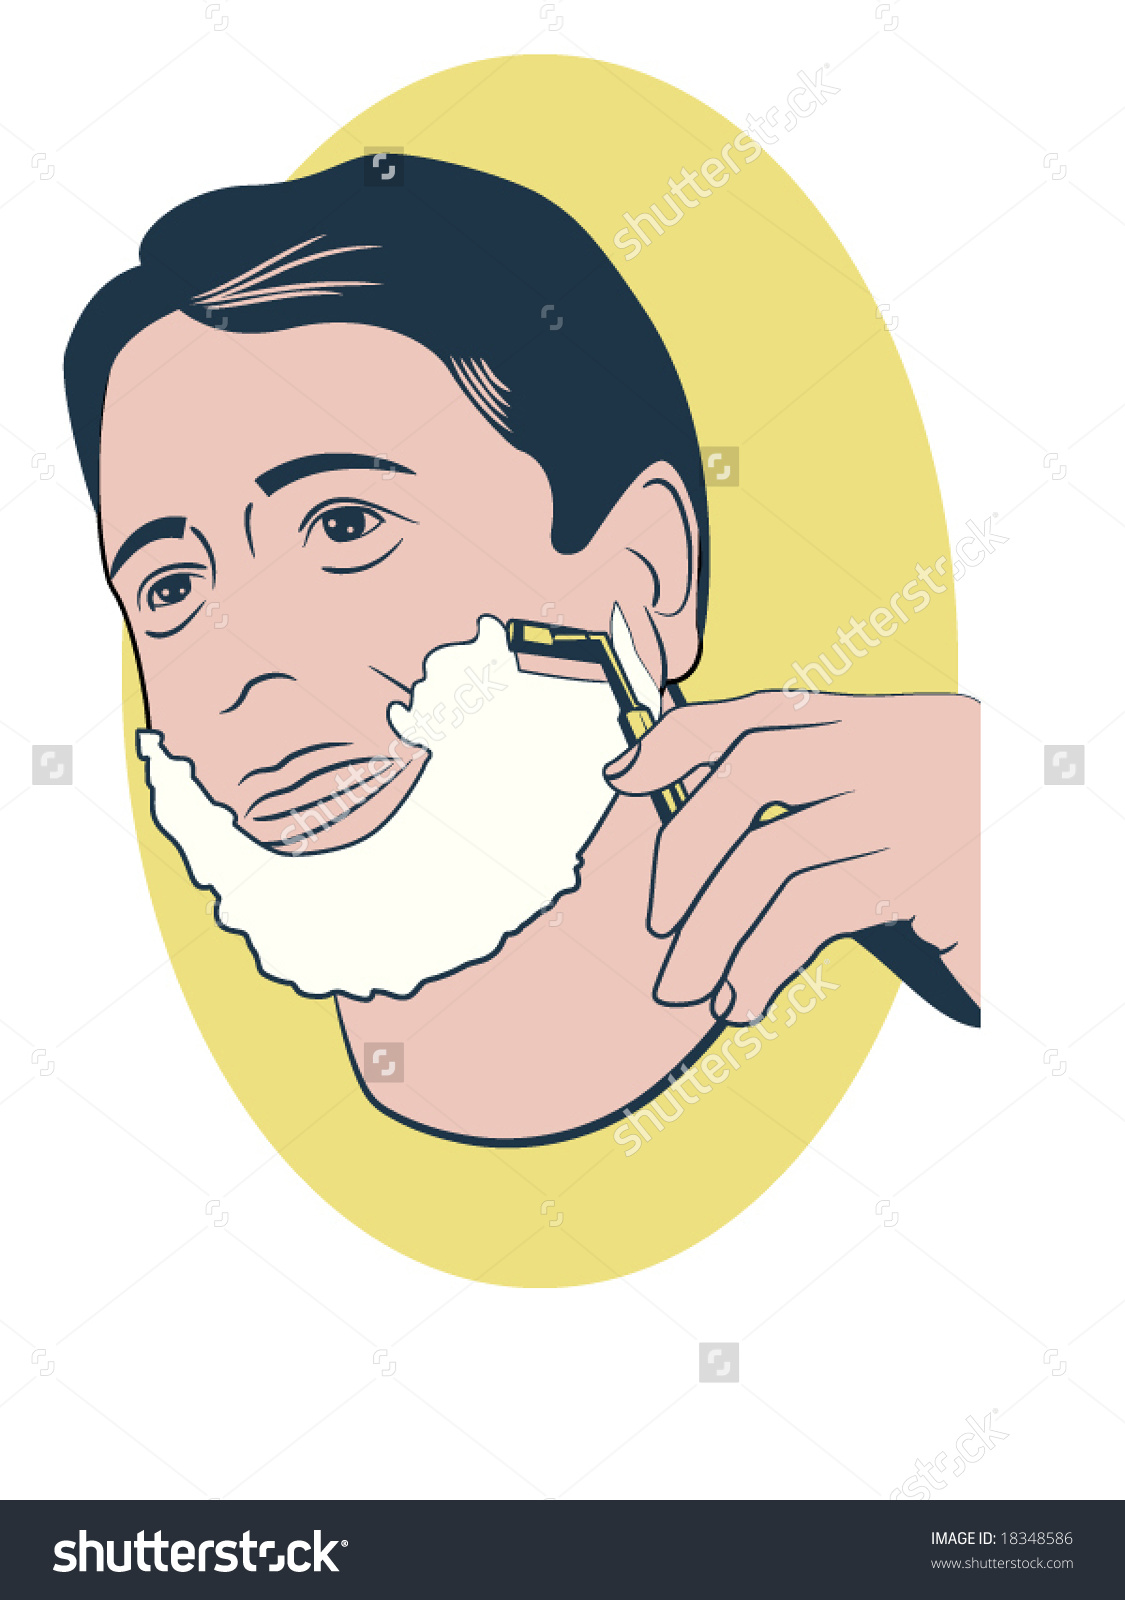 Clipart shave.